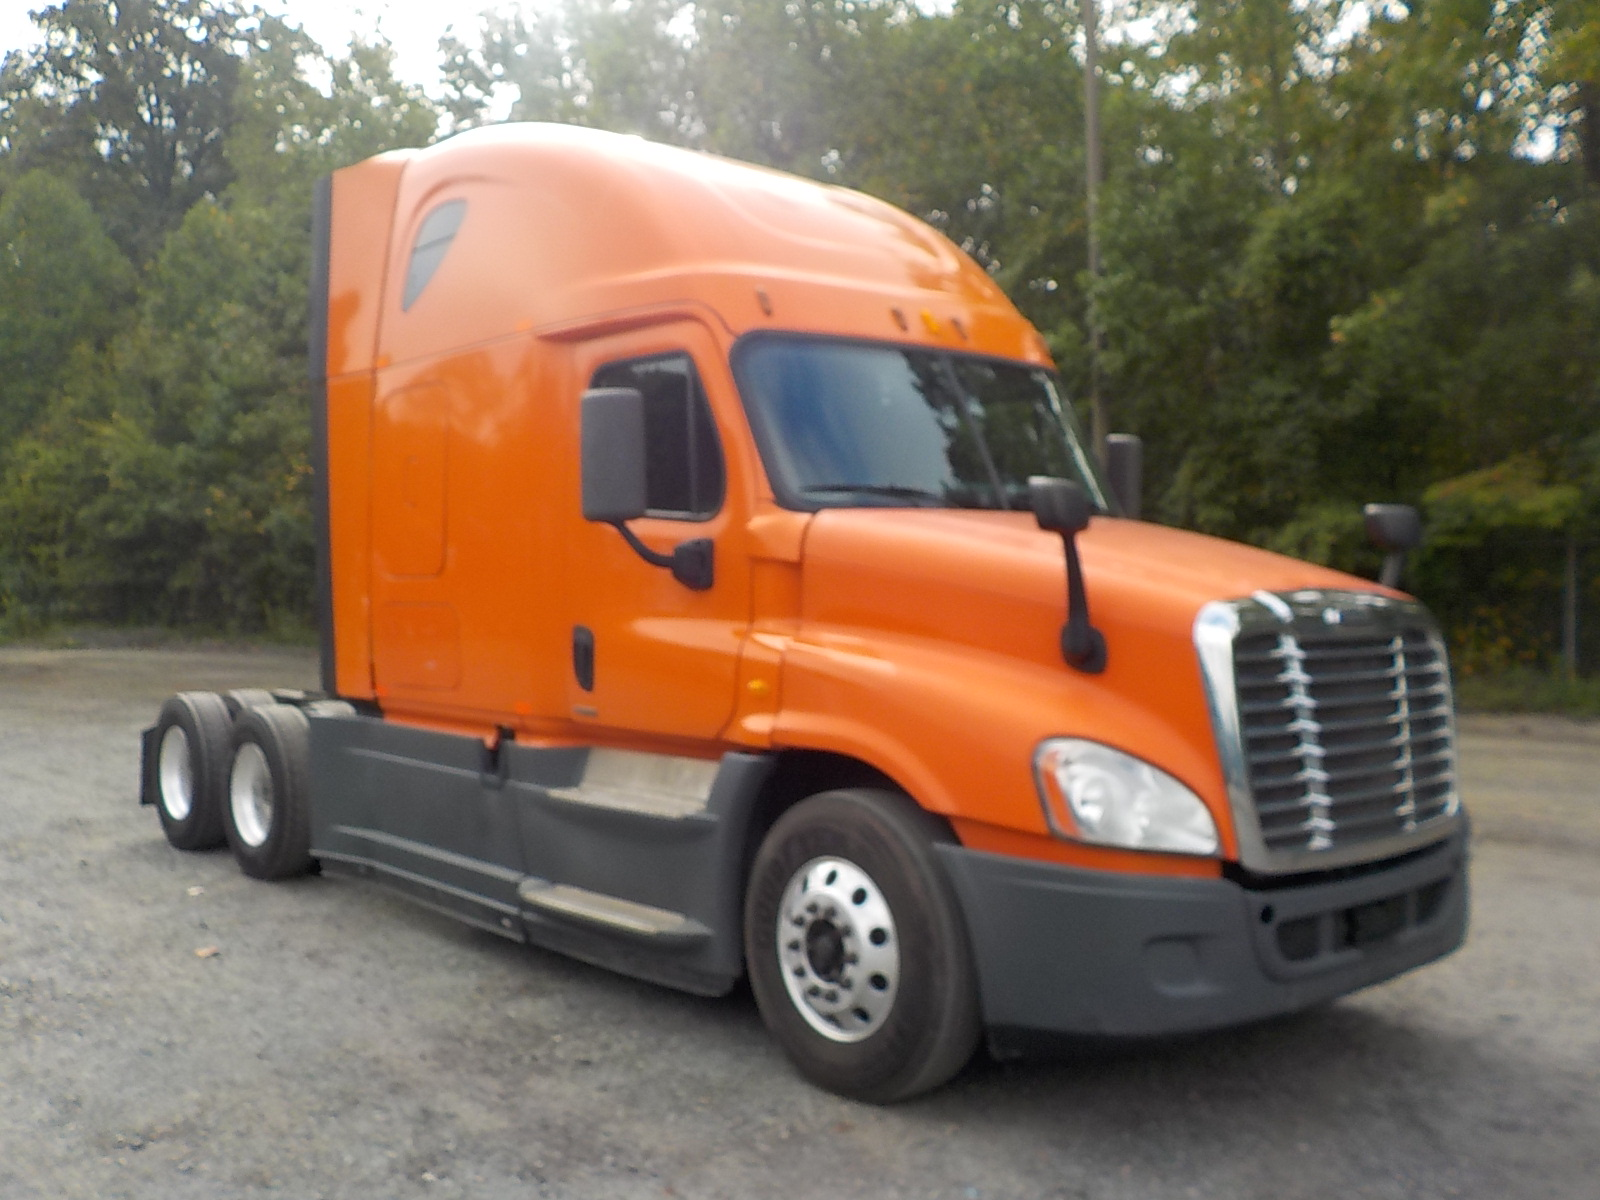 USED 2014 FREIGHTLINER CASCADIA SLEEPER TRUCK #133809